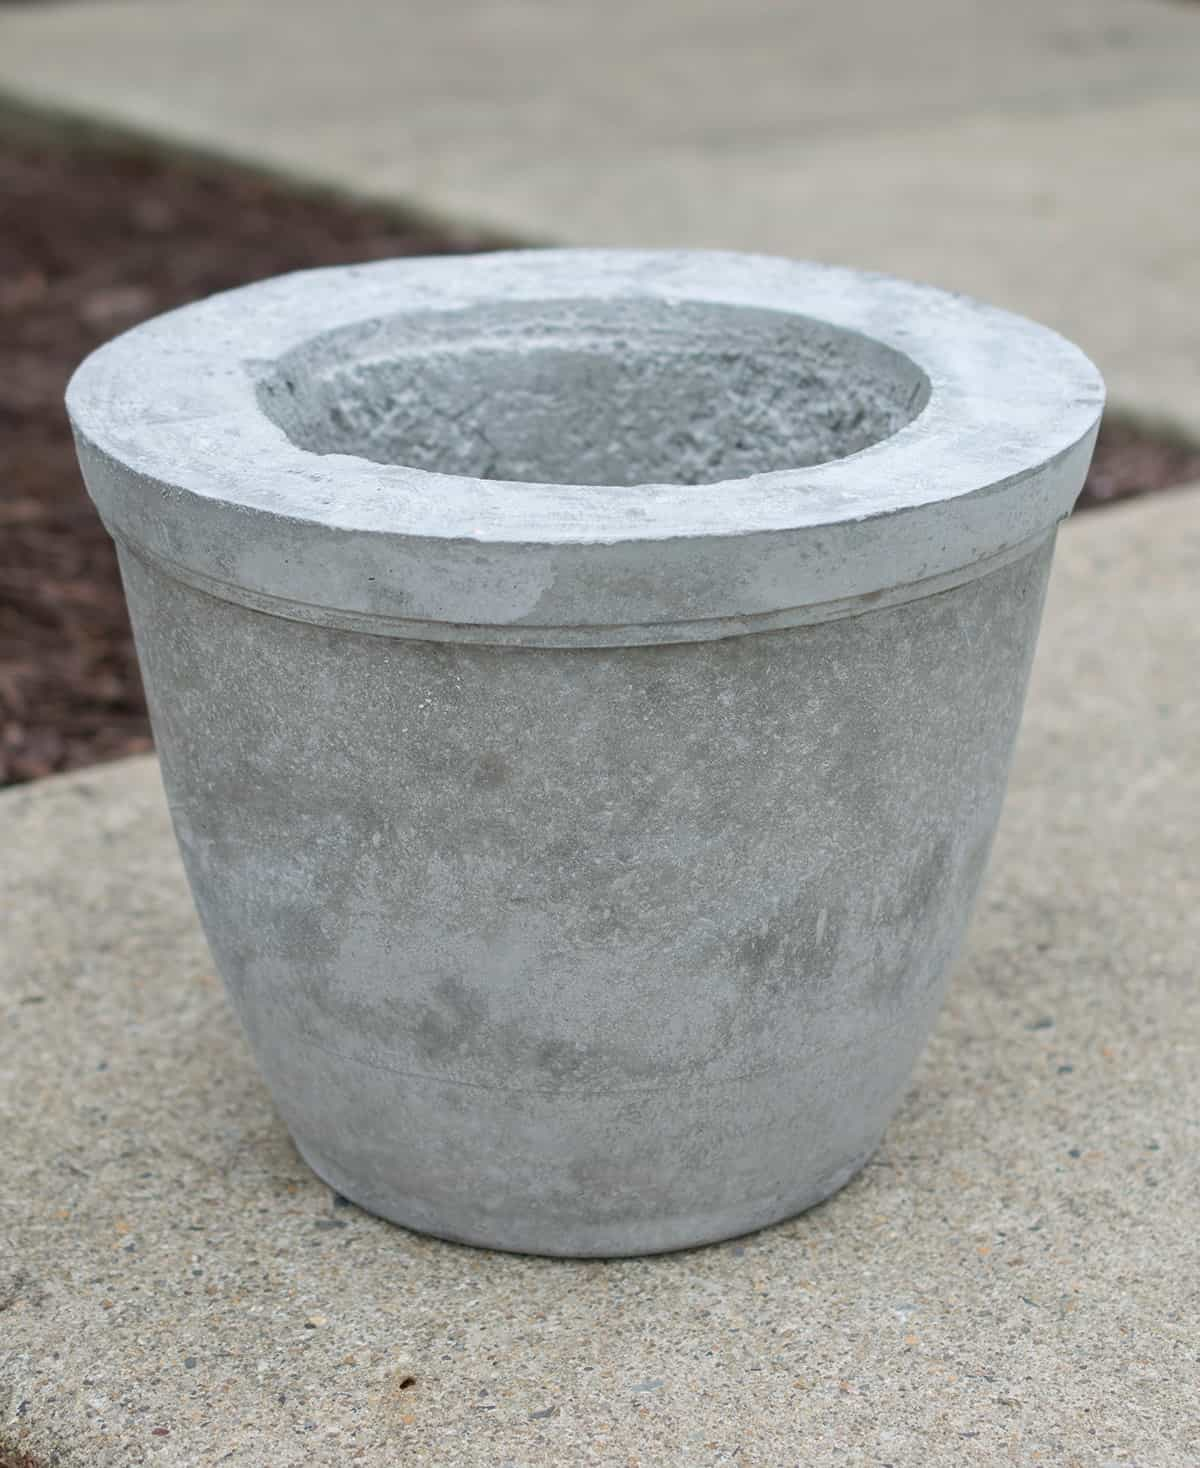 Concrete molded pot before painting.